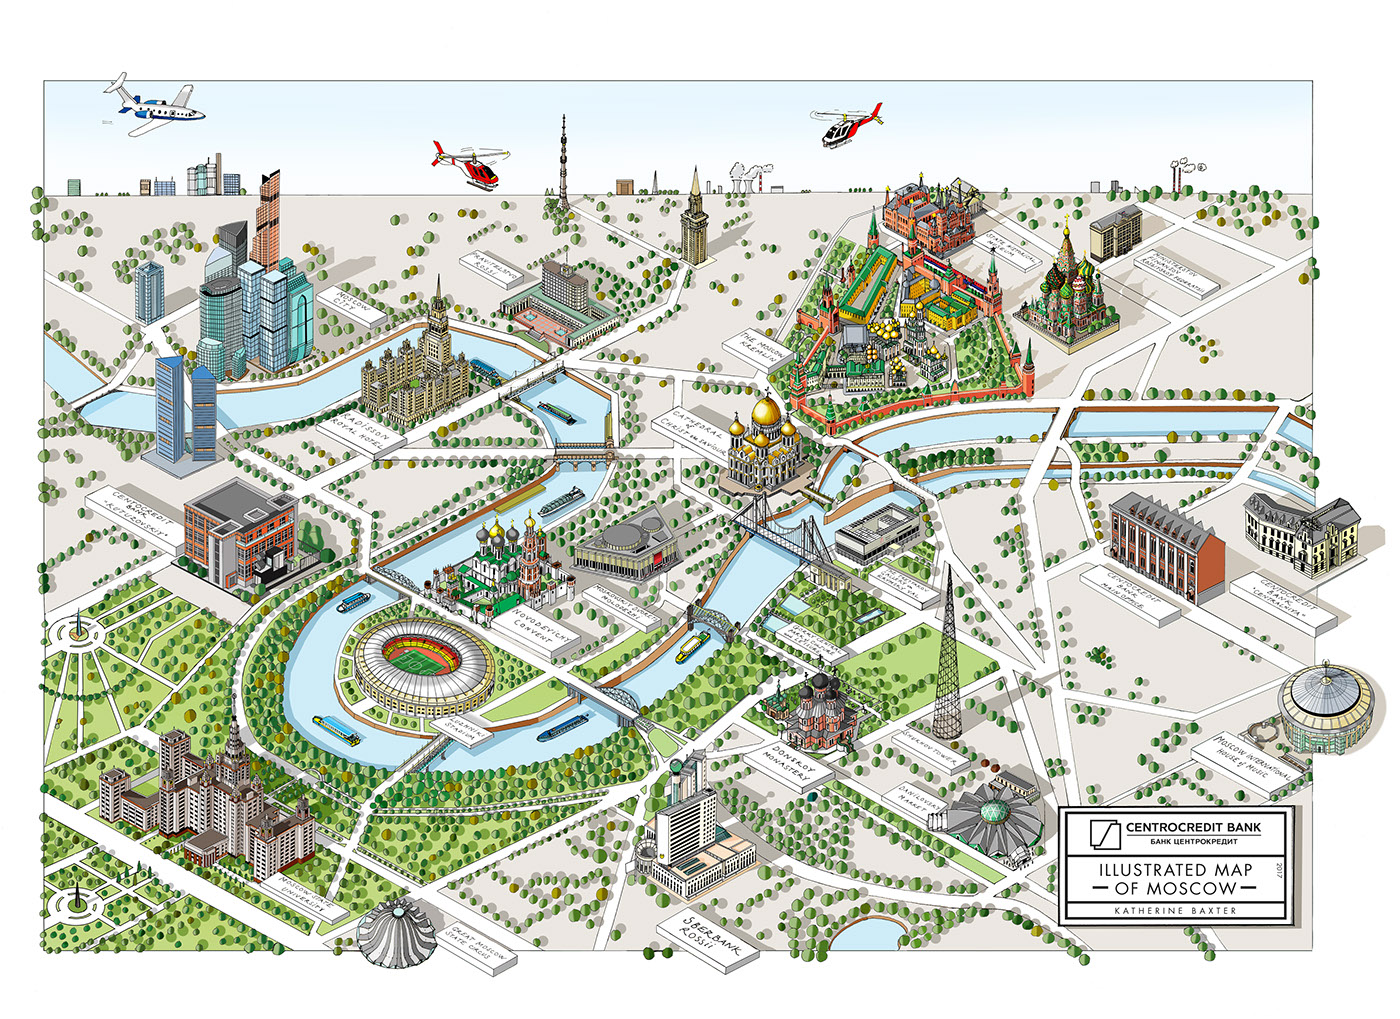 MOSCOW illustrated map on Behance